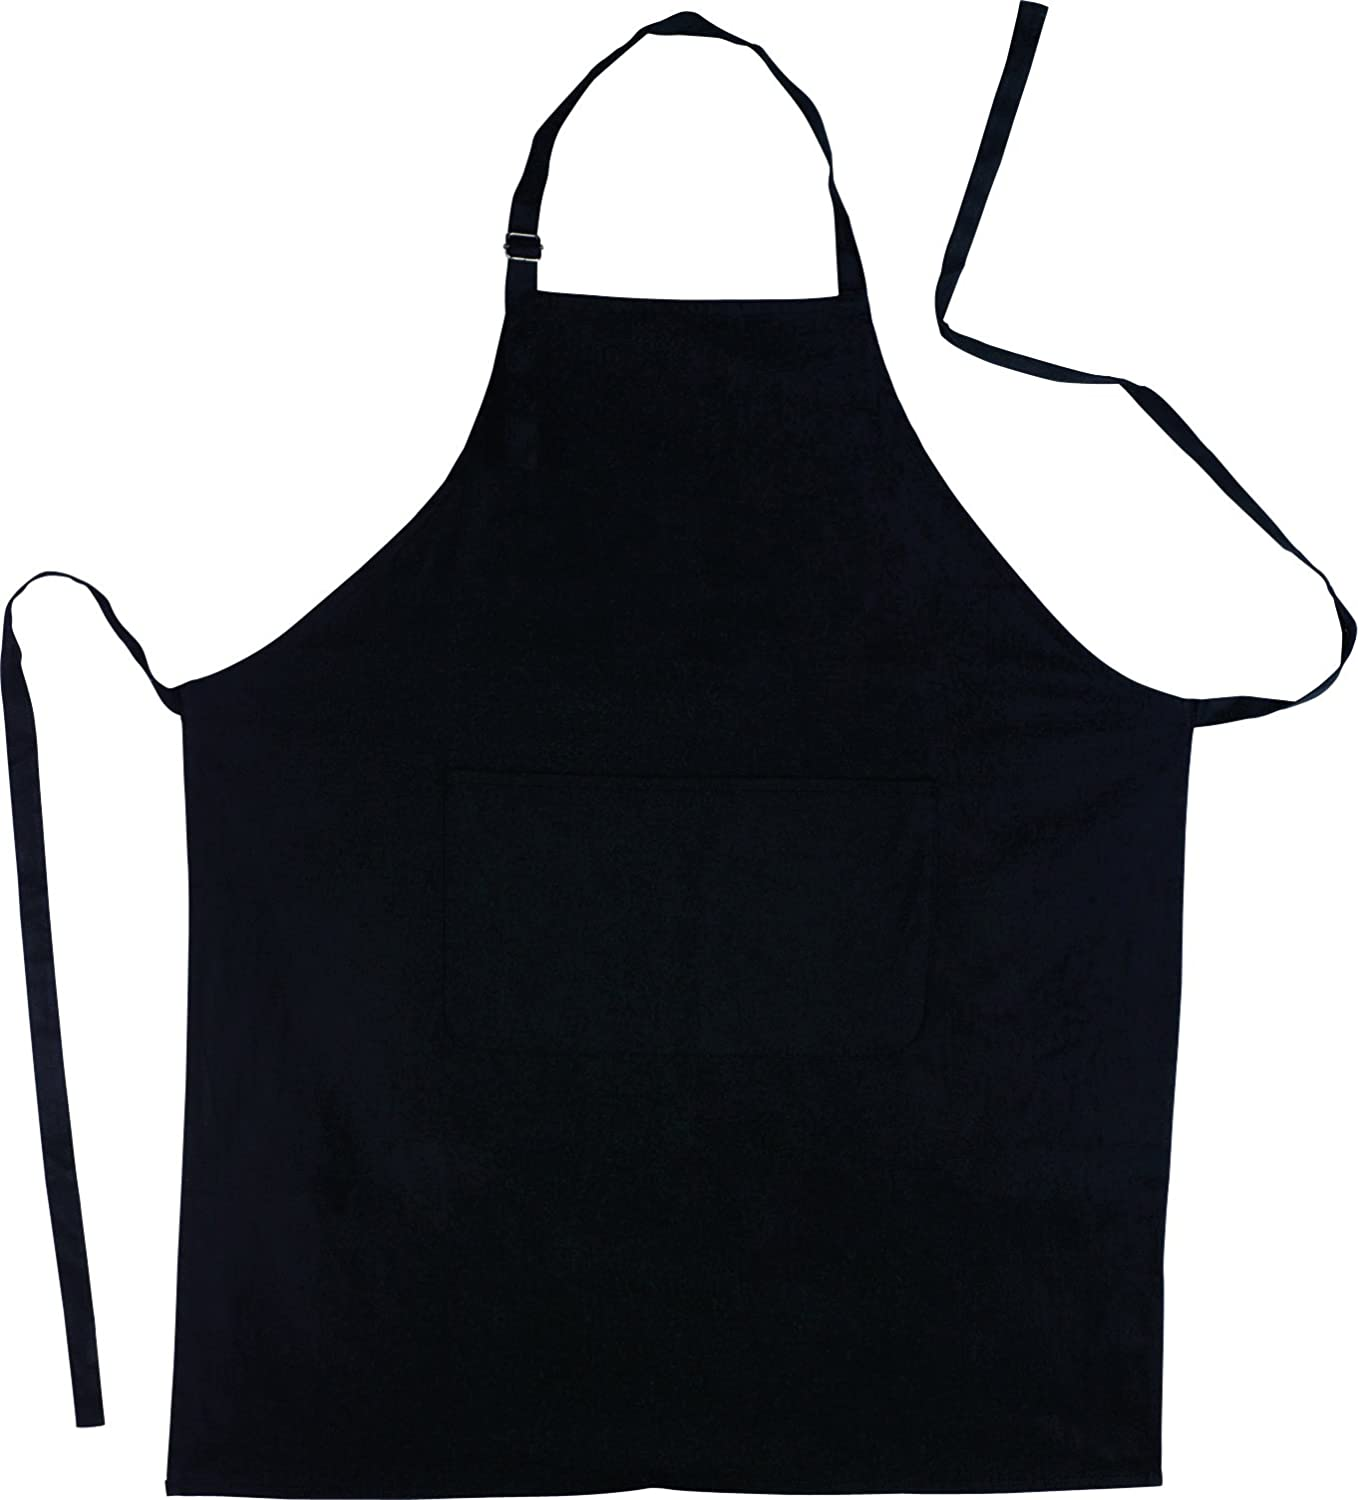 eBuyGB Apron with Front Pocket, Cotton, Black, Full 12005